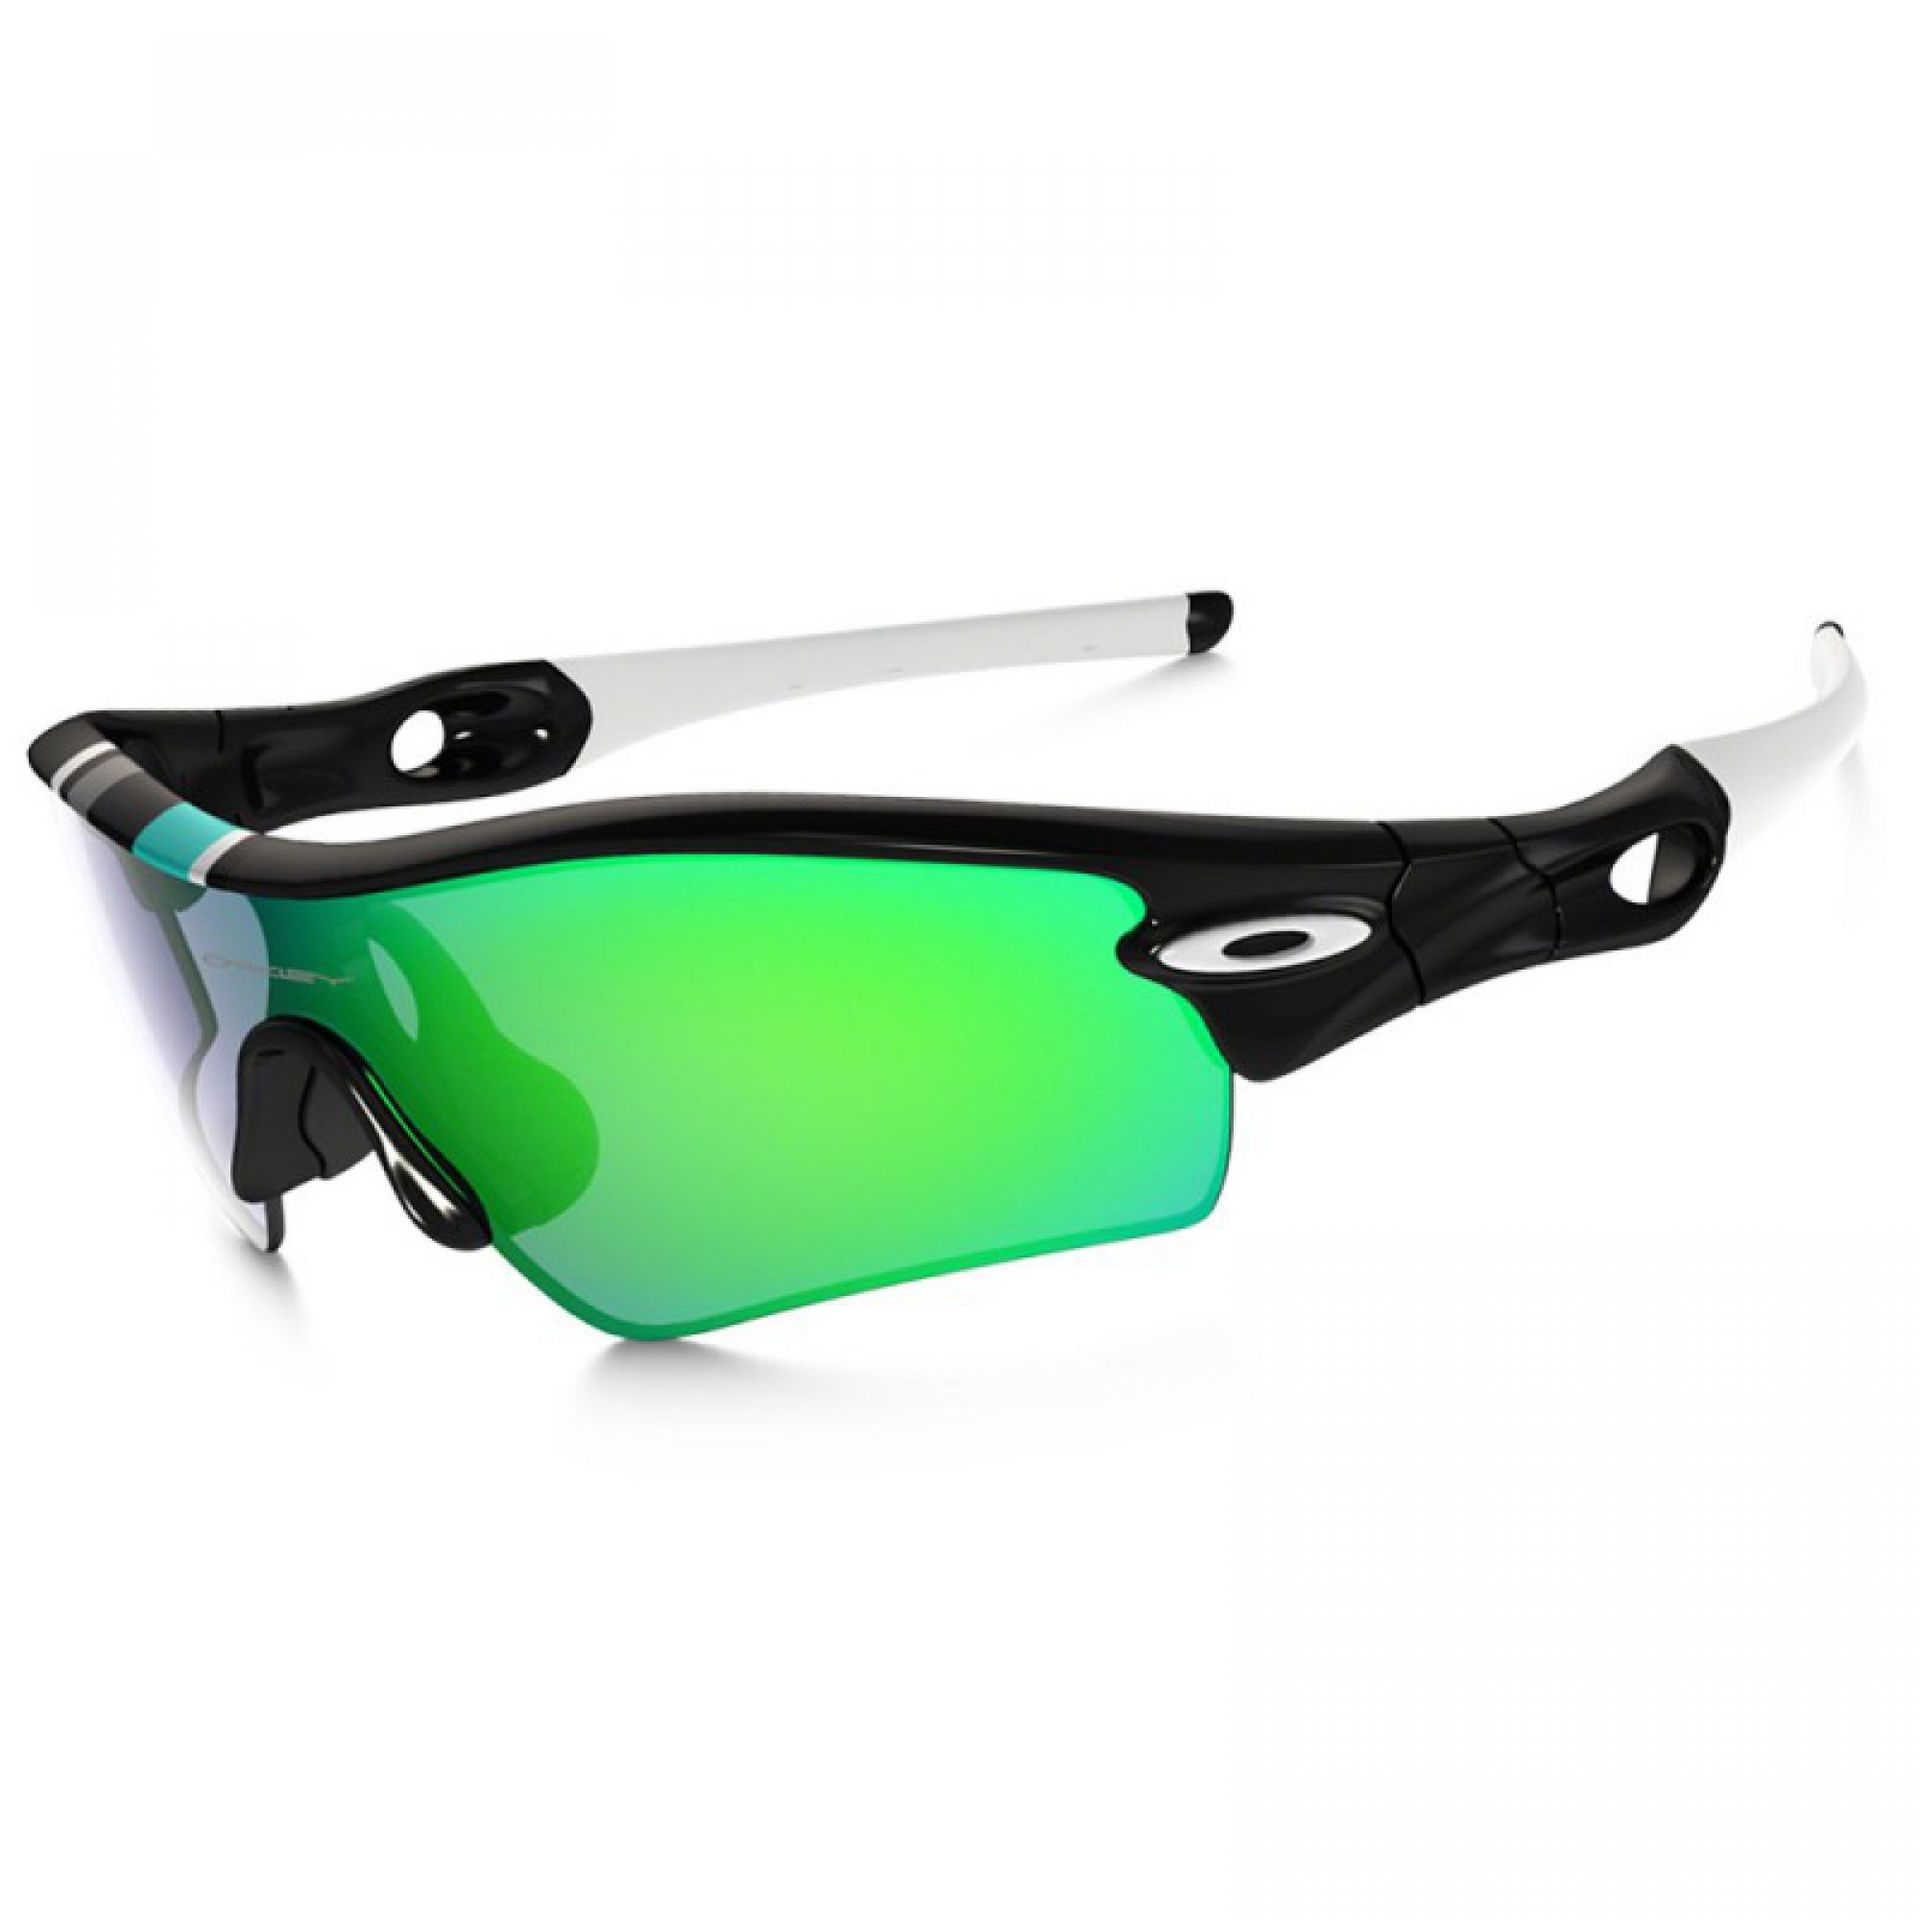 OKULARY OAKLEY RADAR EV PATH POLISHED BLACK JADE IRIDIUM